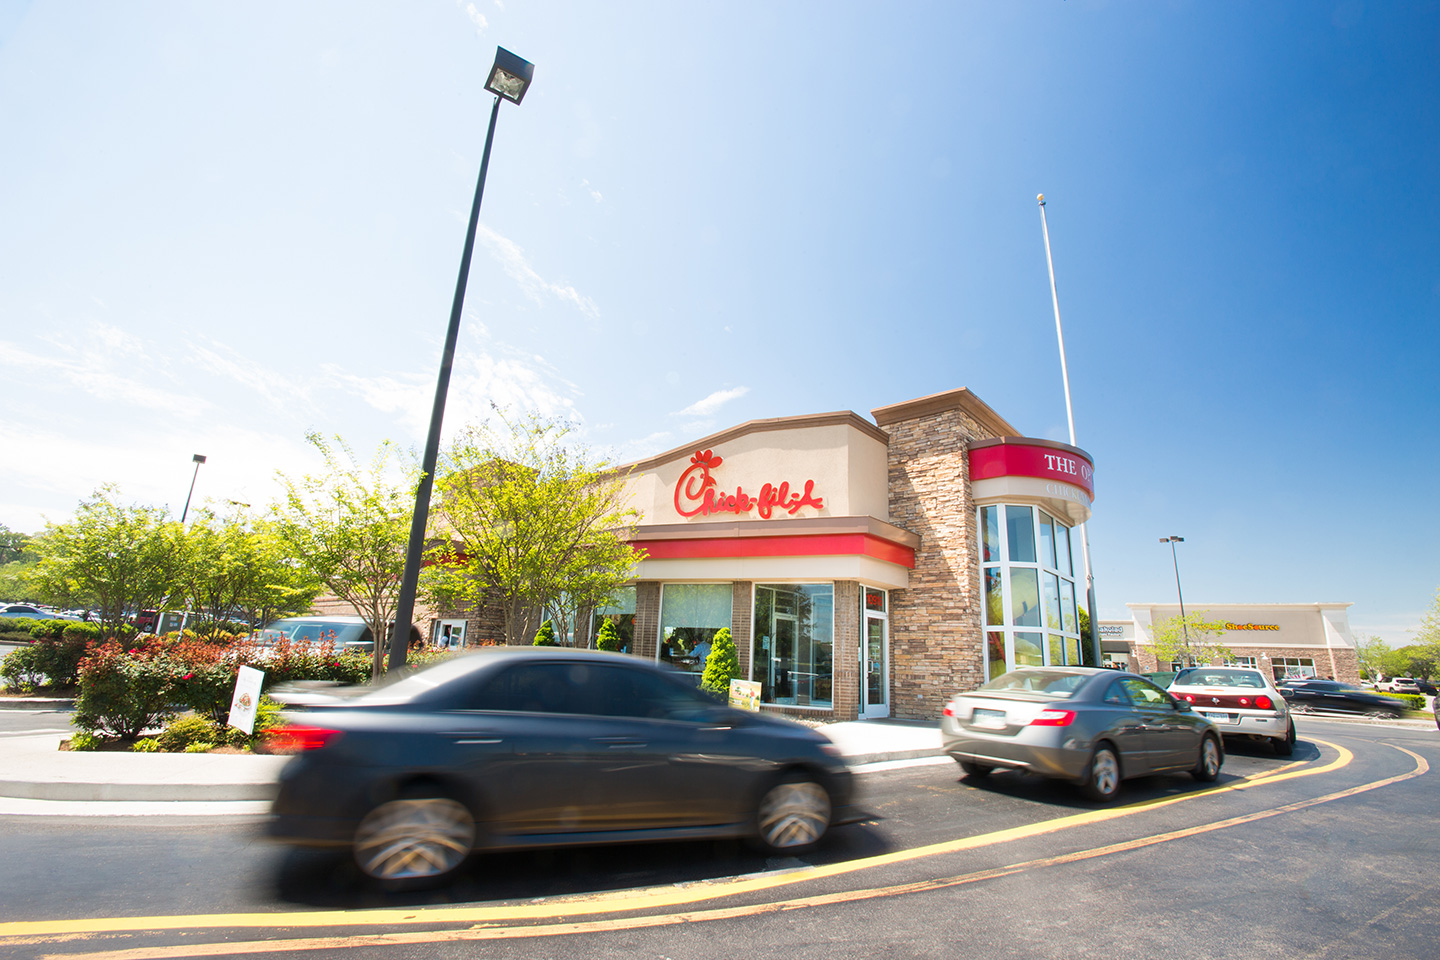 Turkey Creek Chick-fil-A restaurant in Knoxville, Tennessee